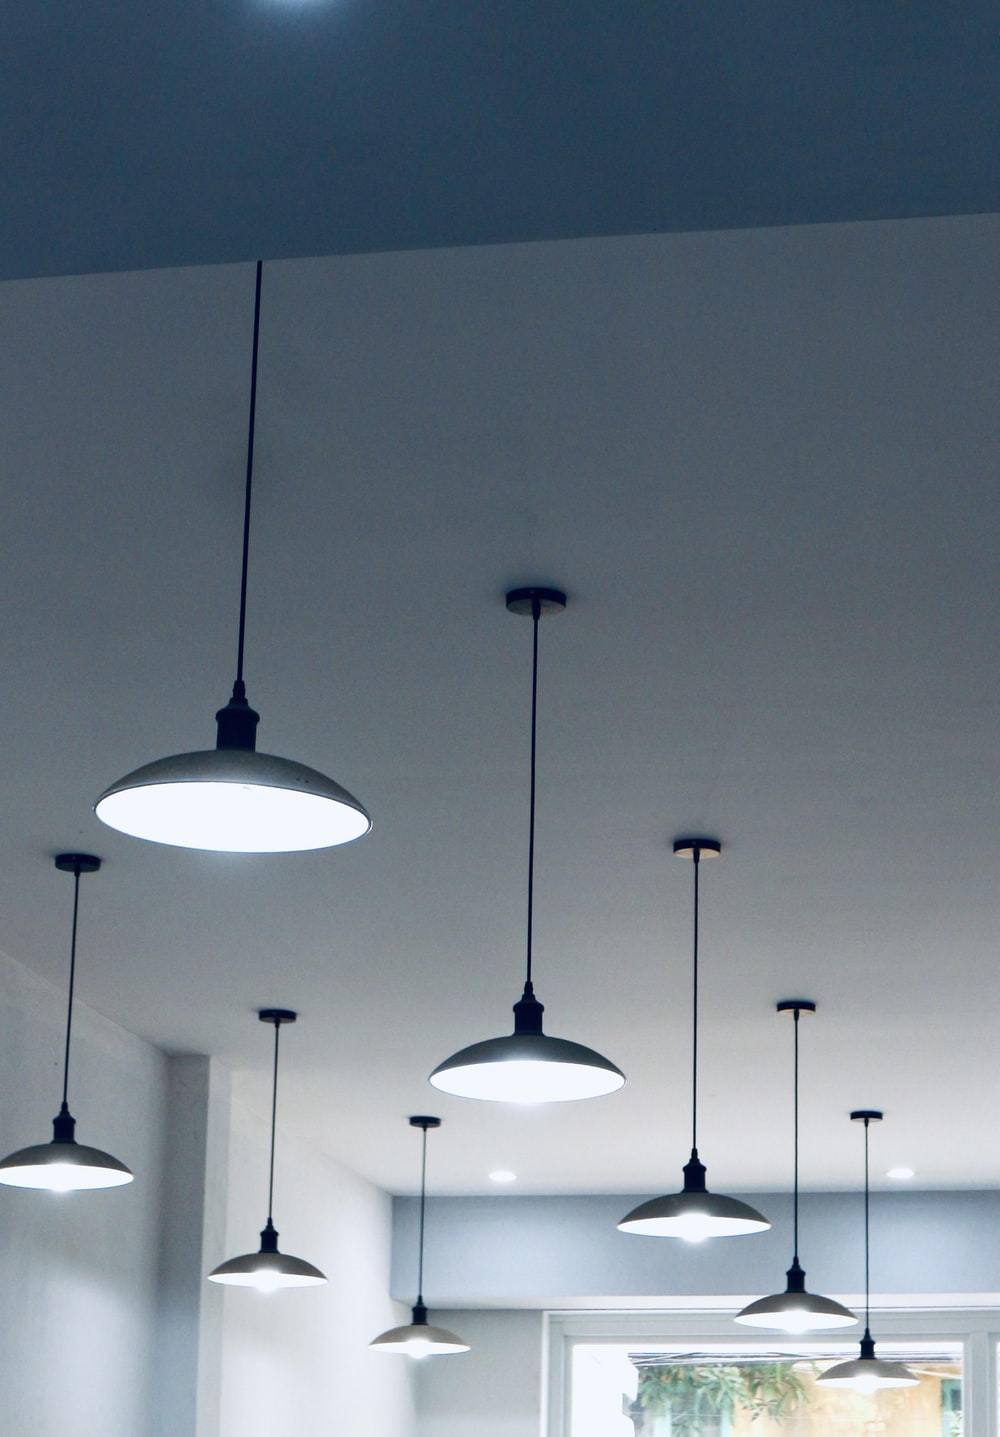 black pendant lamps turned on during daytime